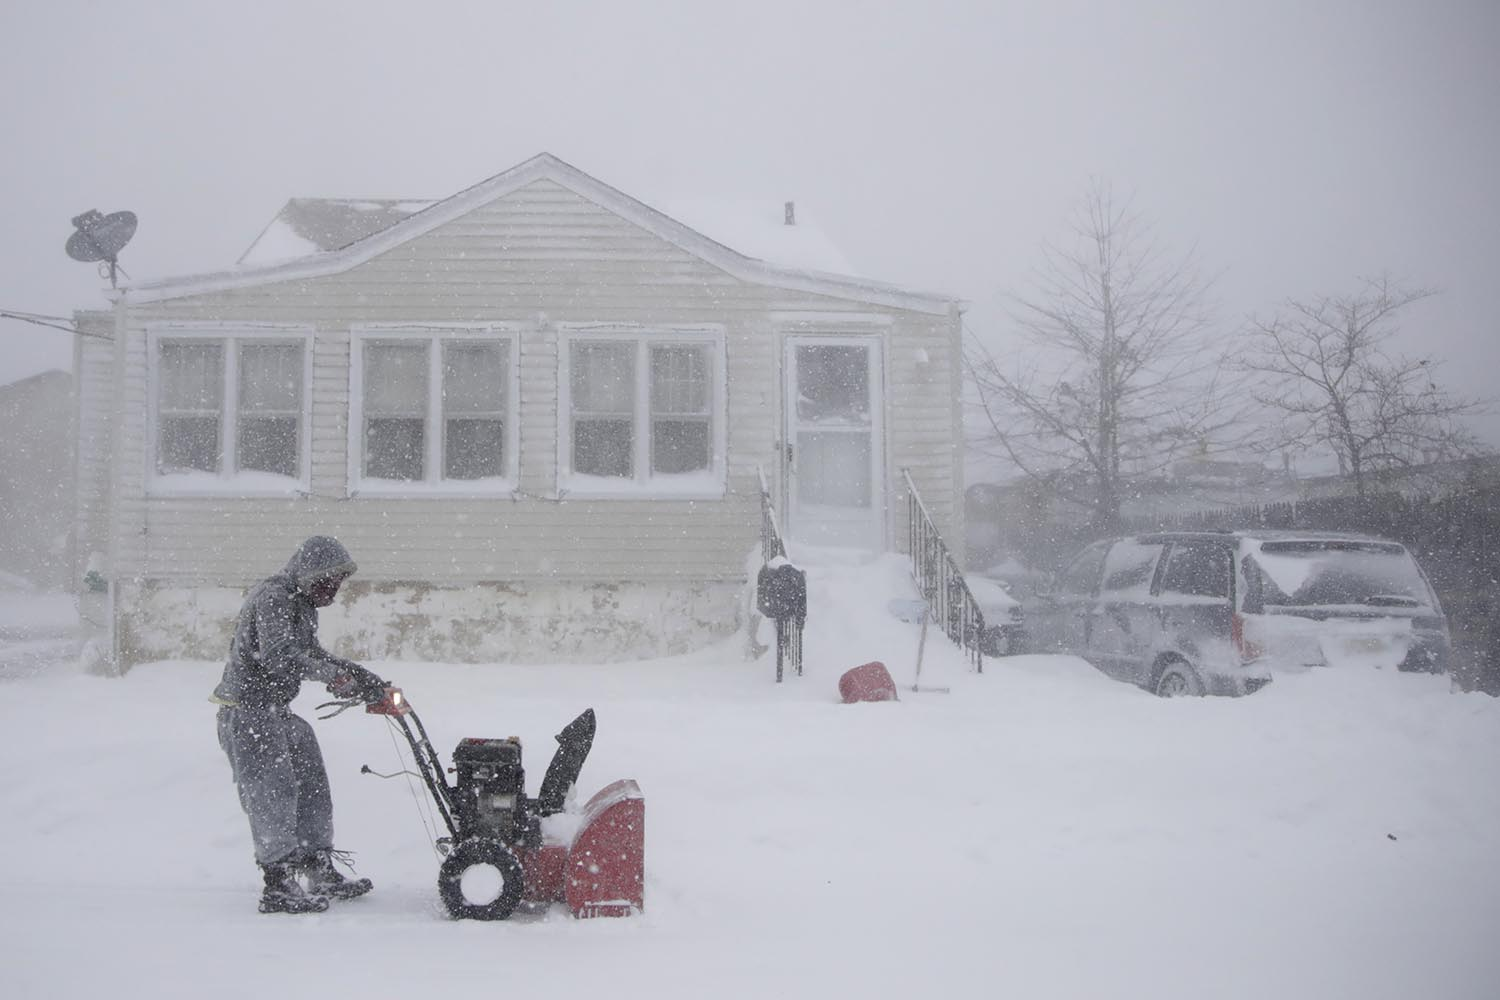 <div class='meta'><div class='origin-logo' data-origin='AP'></div><span class='caption-text' data-credit='AP Photo/Julio Cortez'>Gilberto Colin gets a head start on snowplowing his property during the middle of a snowstorm, Thursday, Jan. 4, 2018, in Neptune, N.J.</span></div>